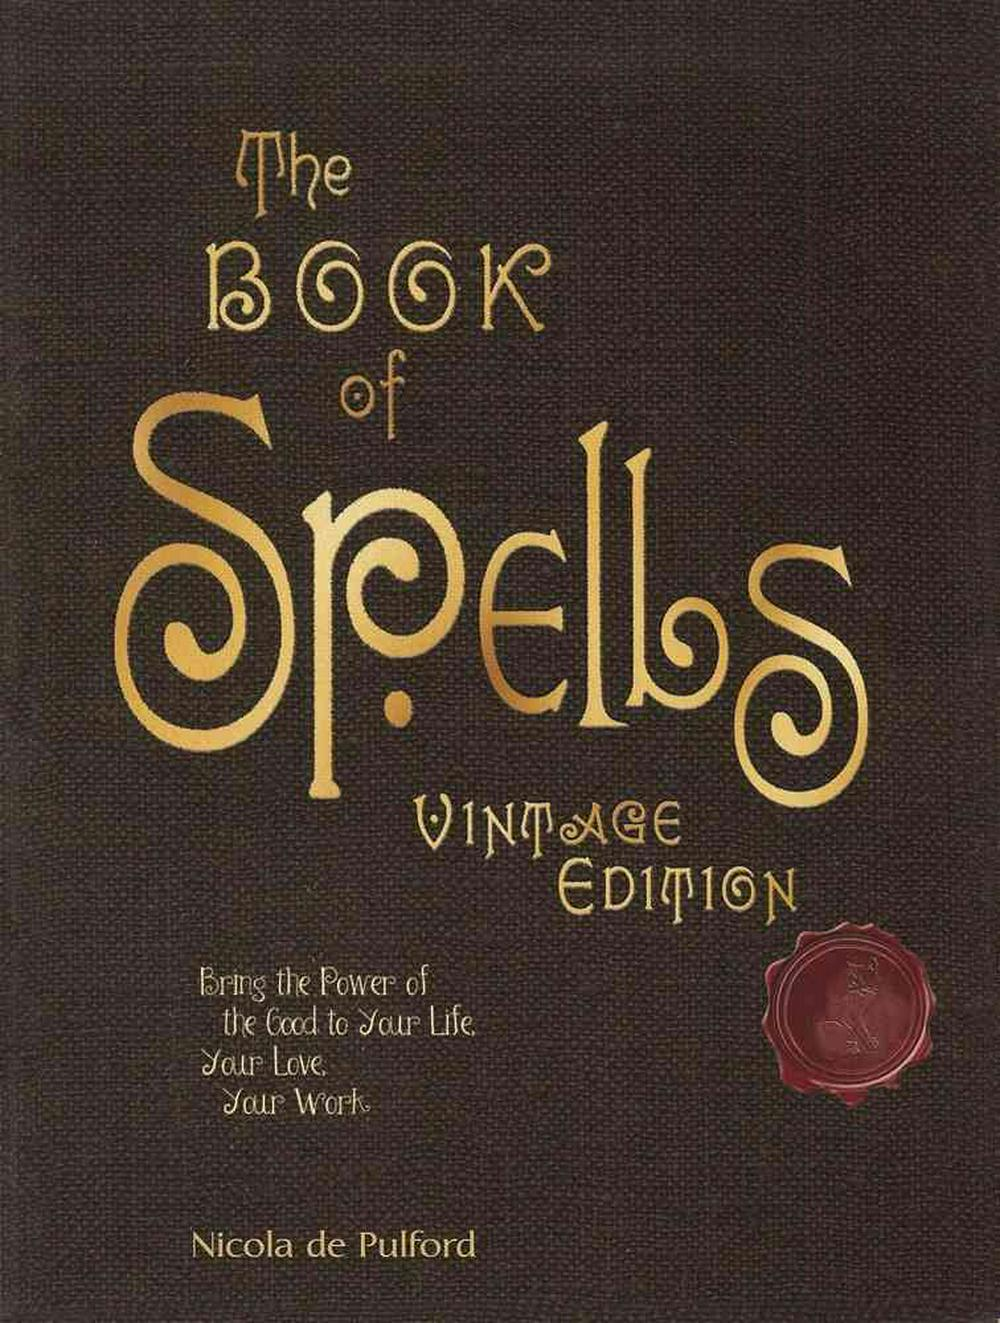 The Book of Spells: Vintage Edition